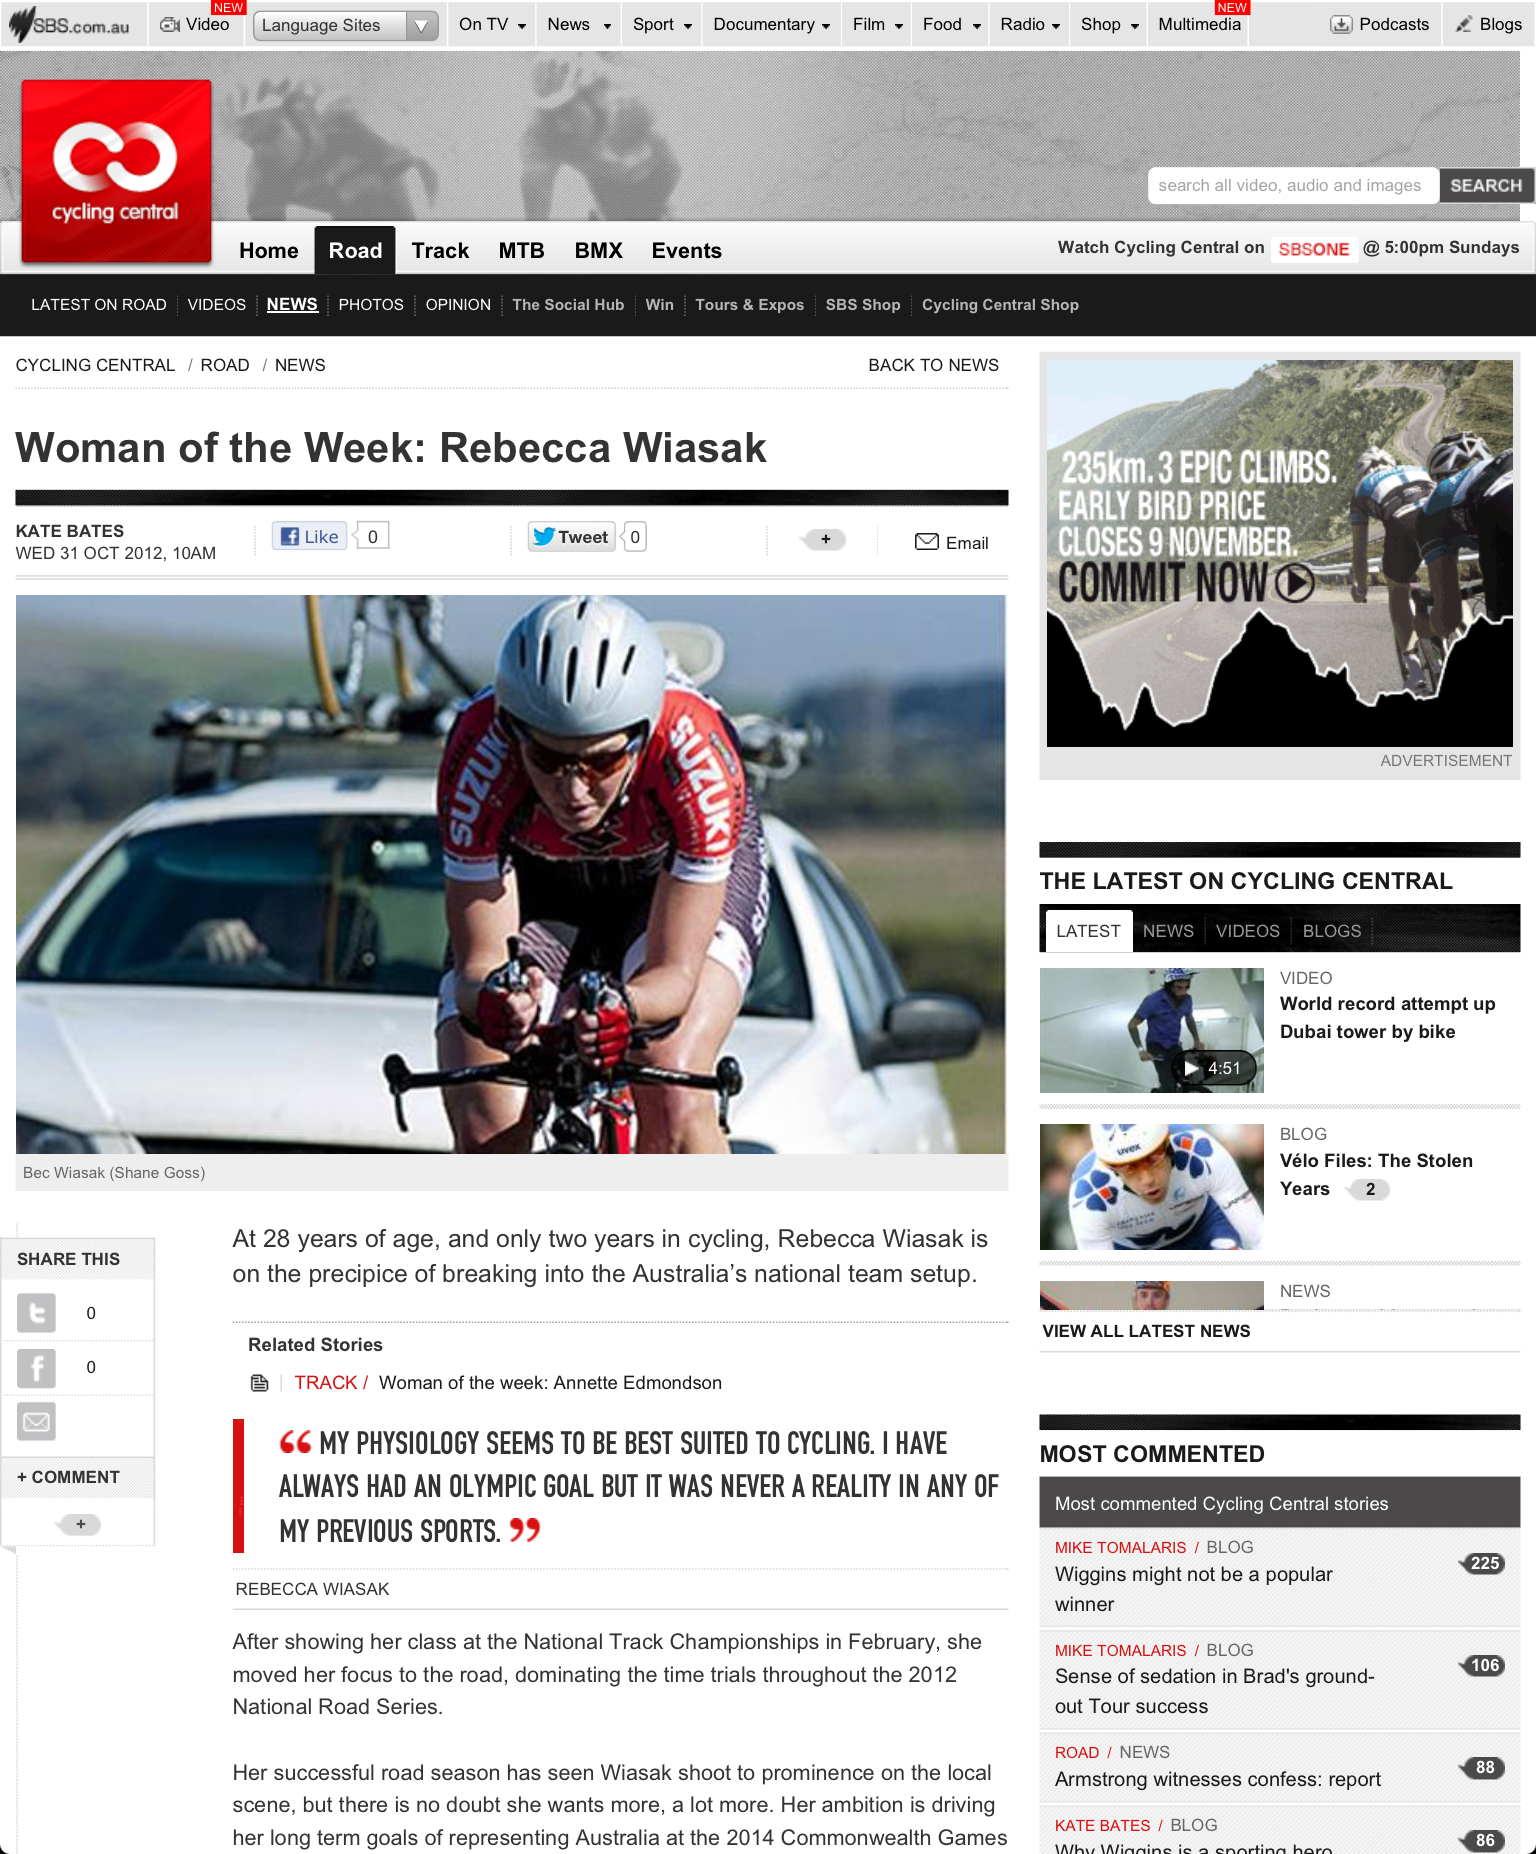 Woman of the Week profile: SBS Cycling Central   31 October 2012